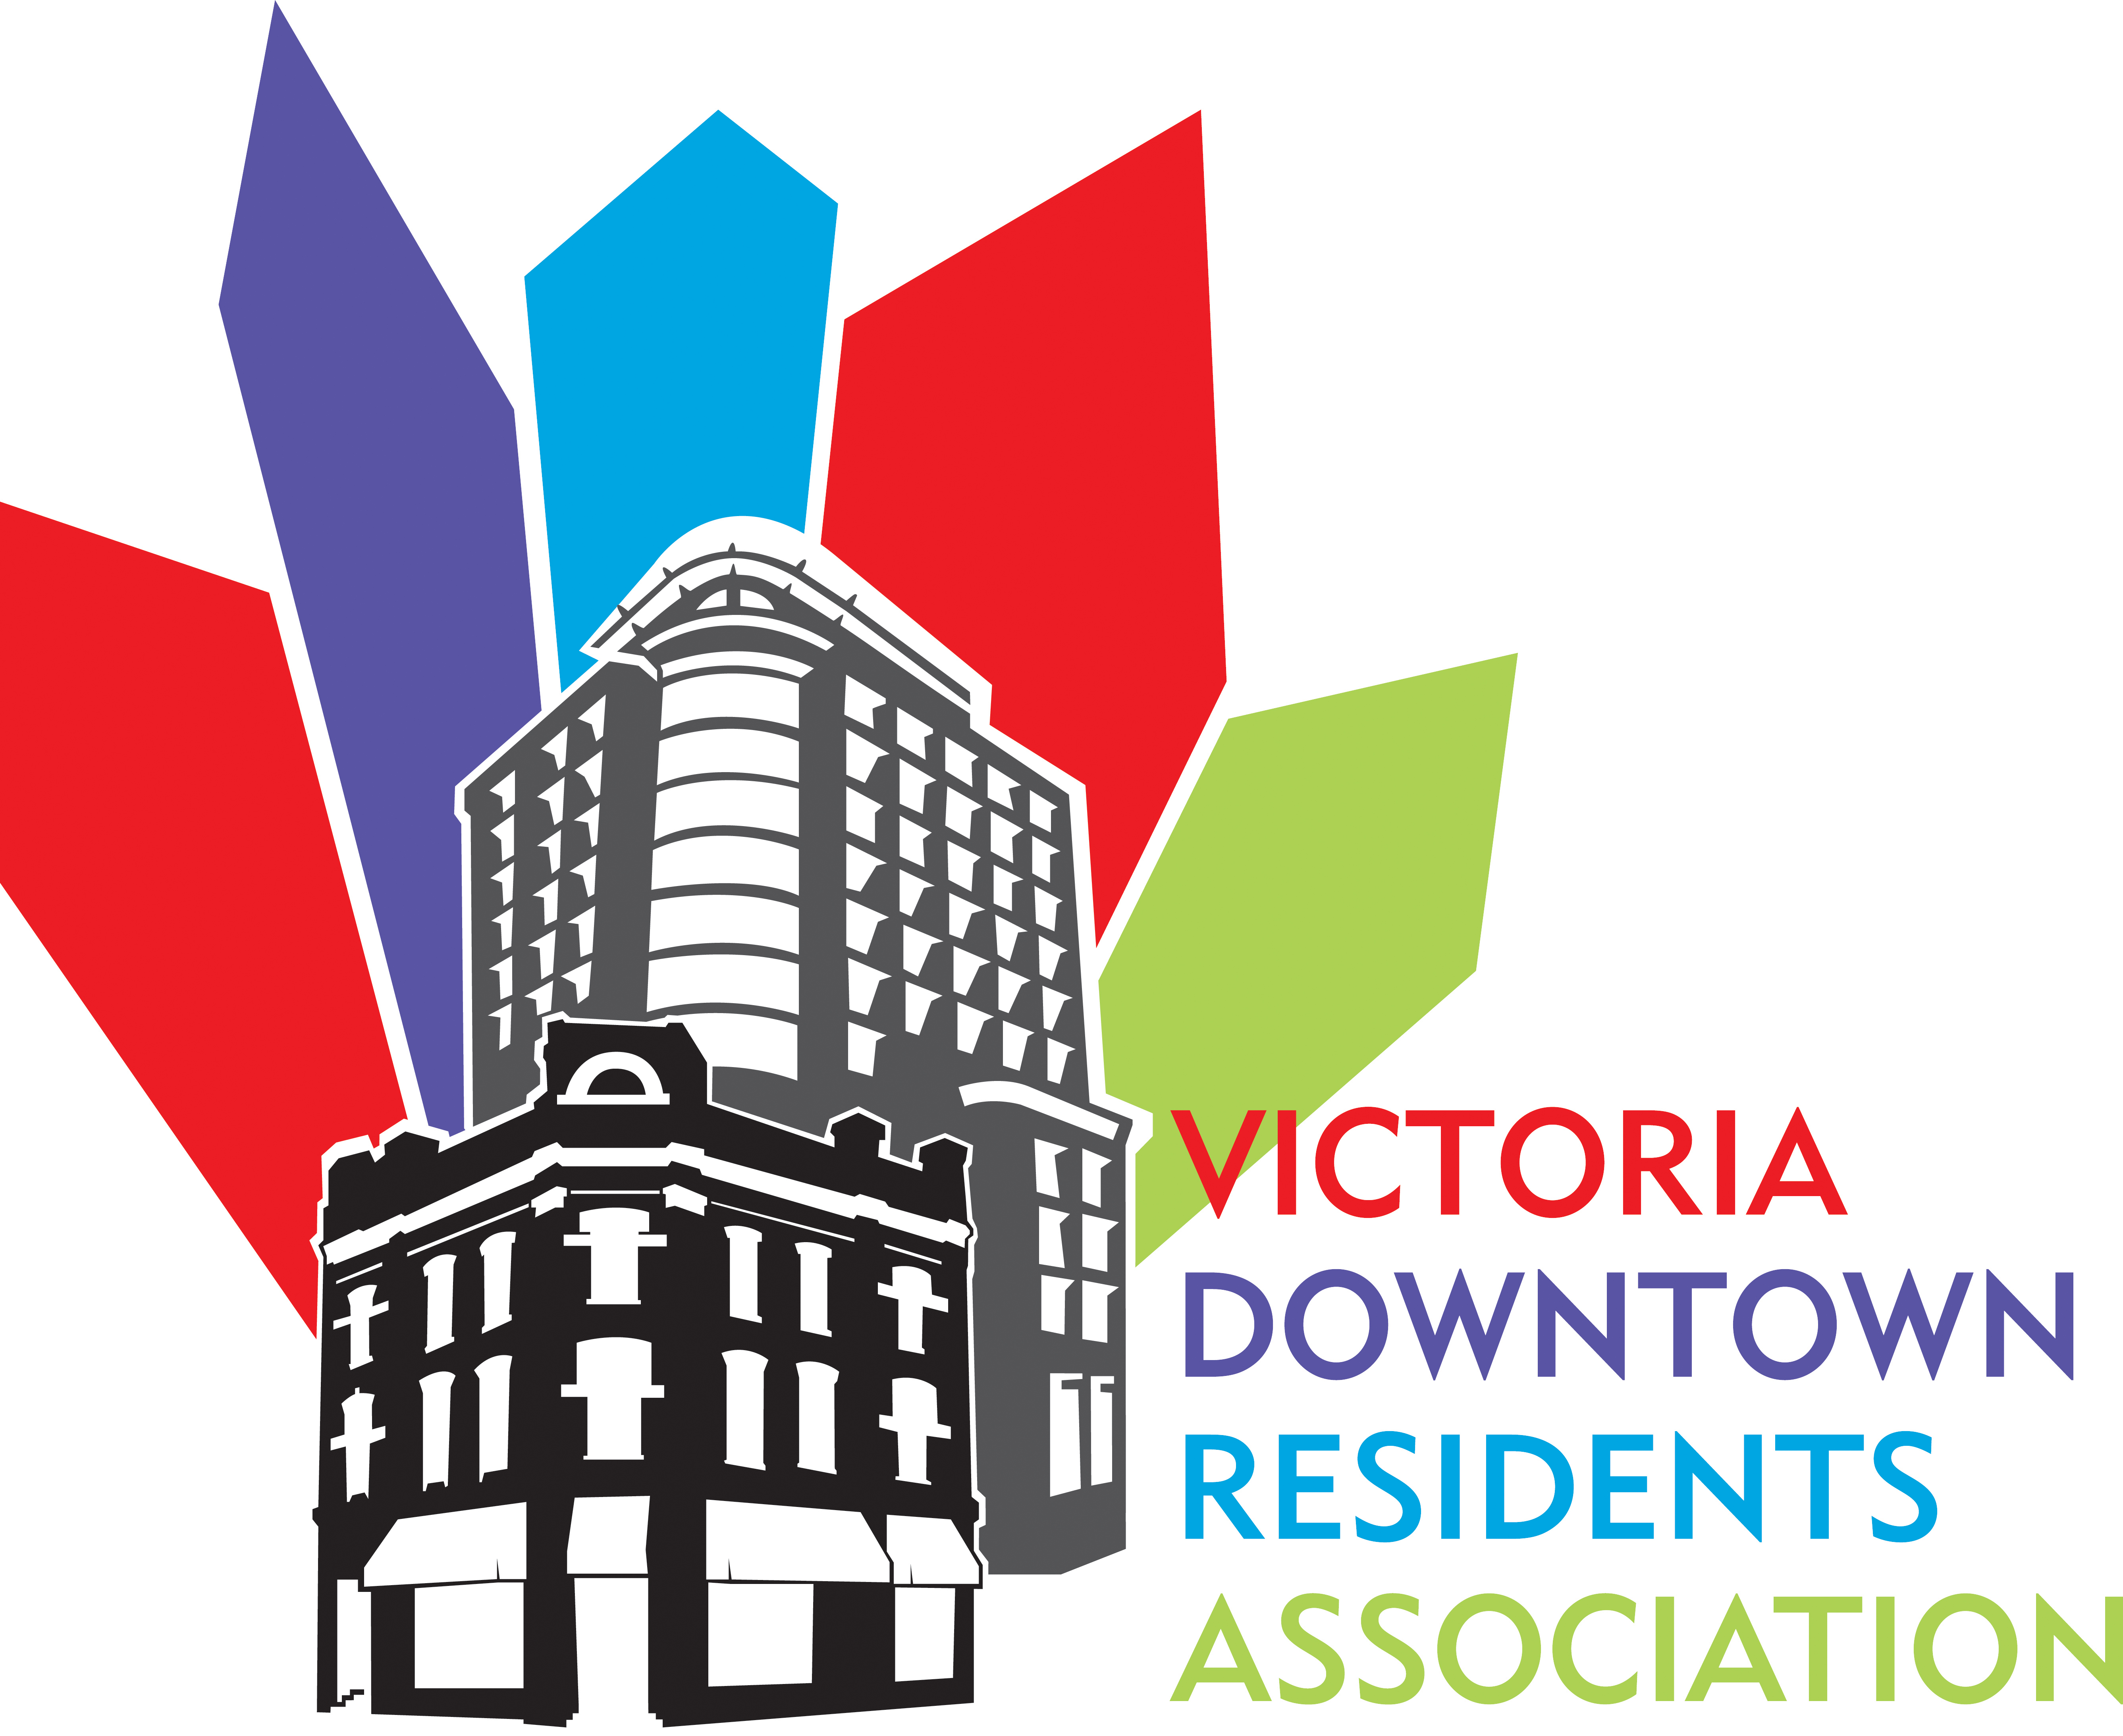 victoriadowntownresidents-logo-colour-1 copy.jpg